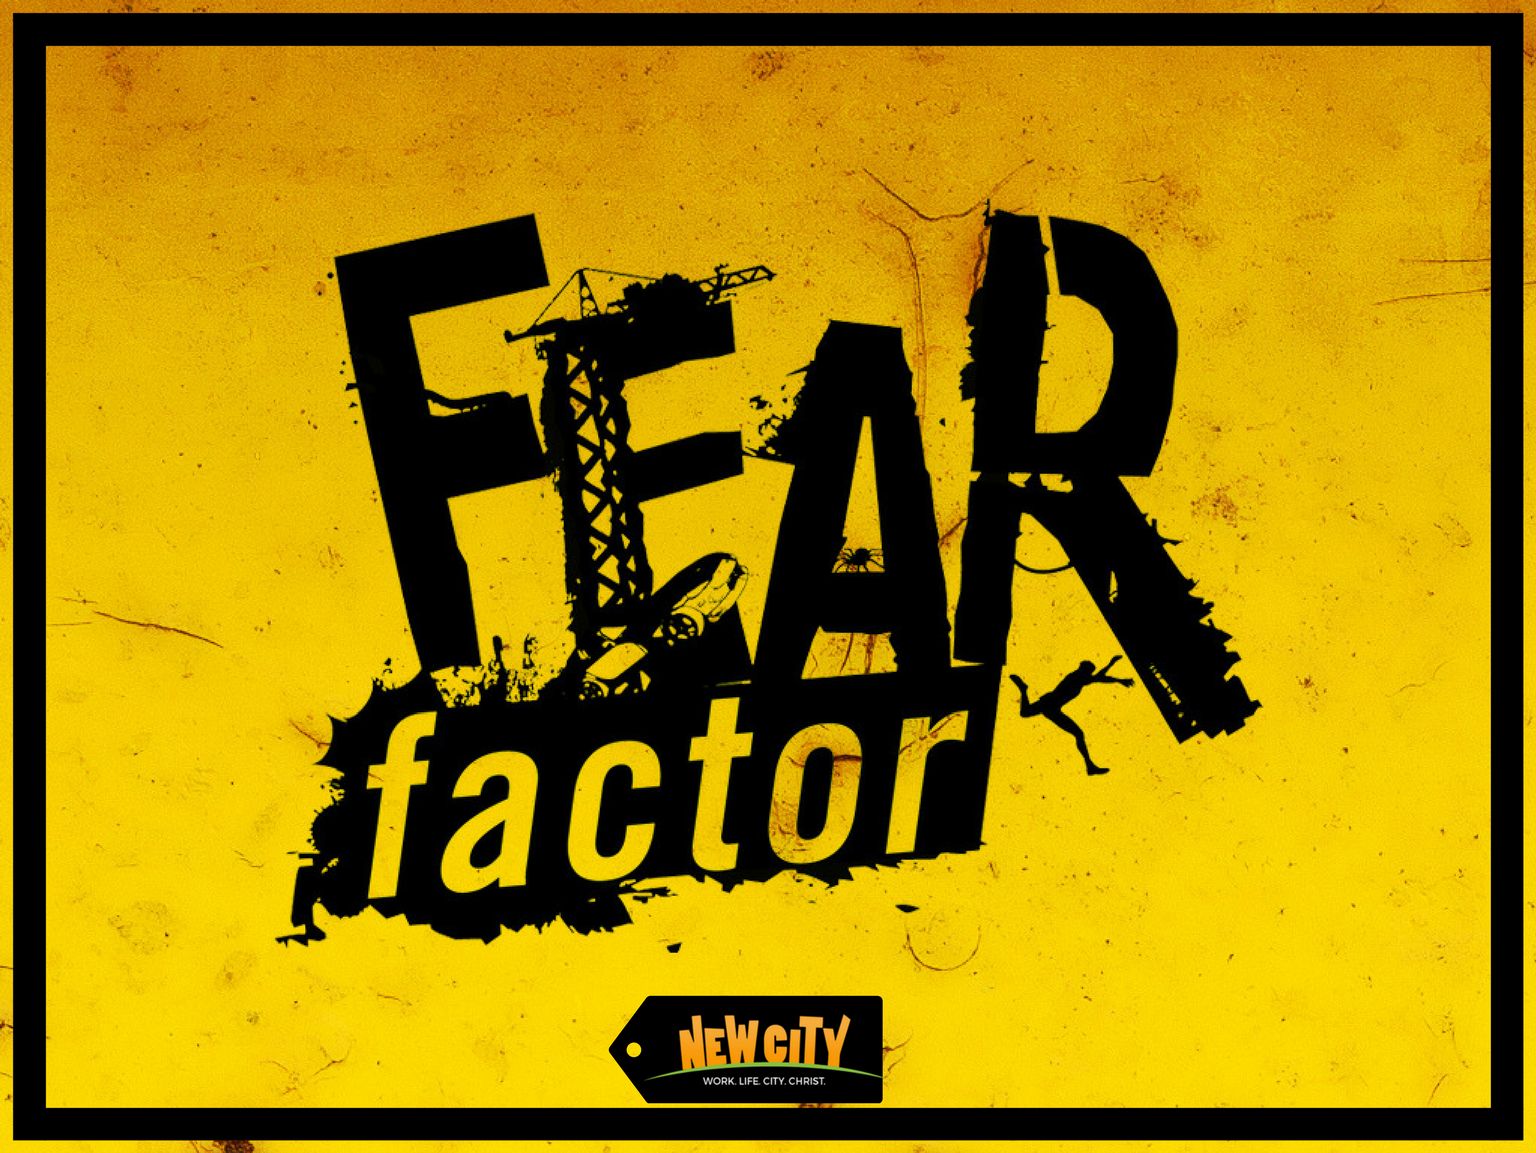 Fear Factor Image